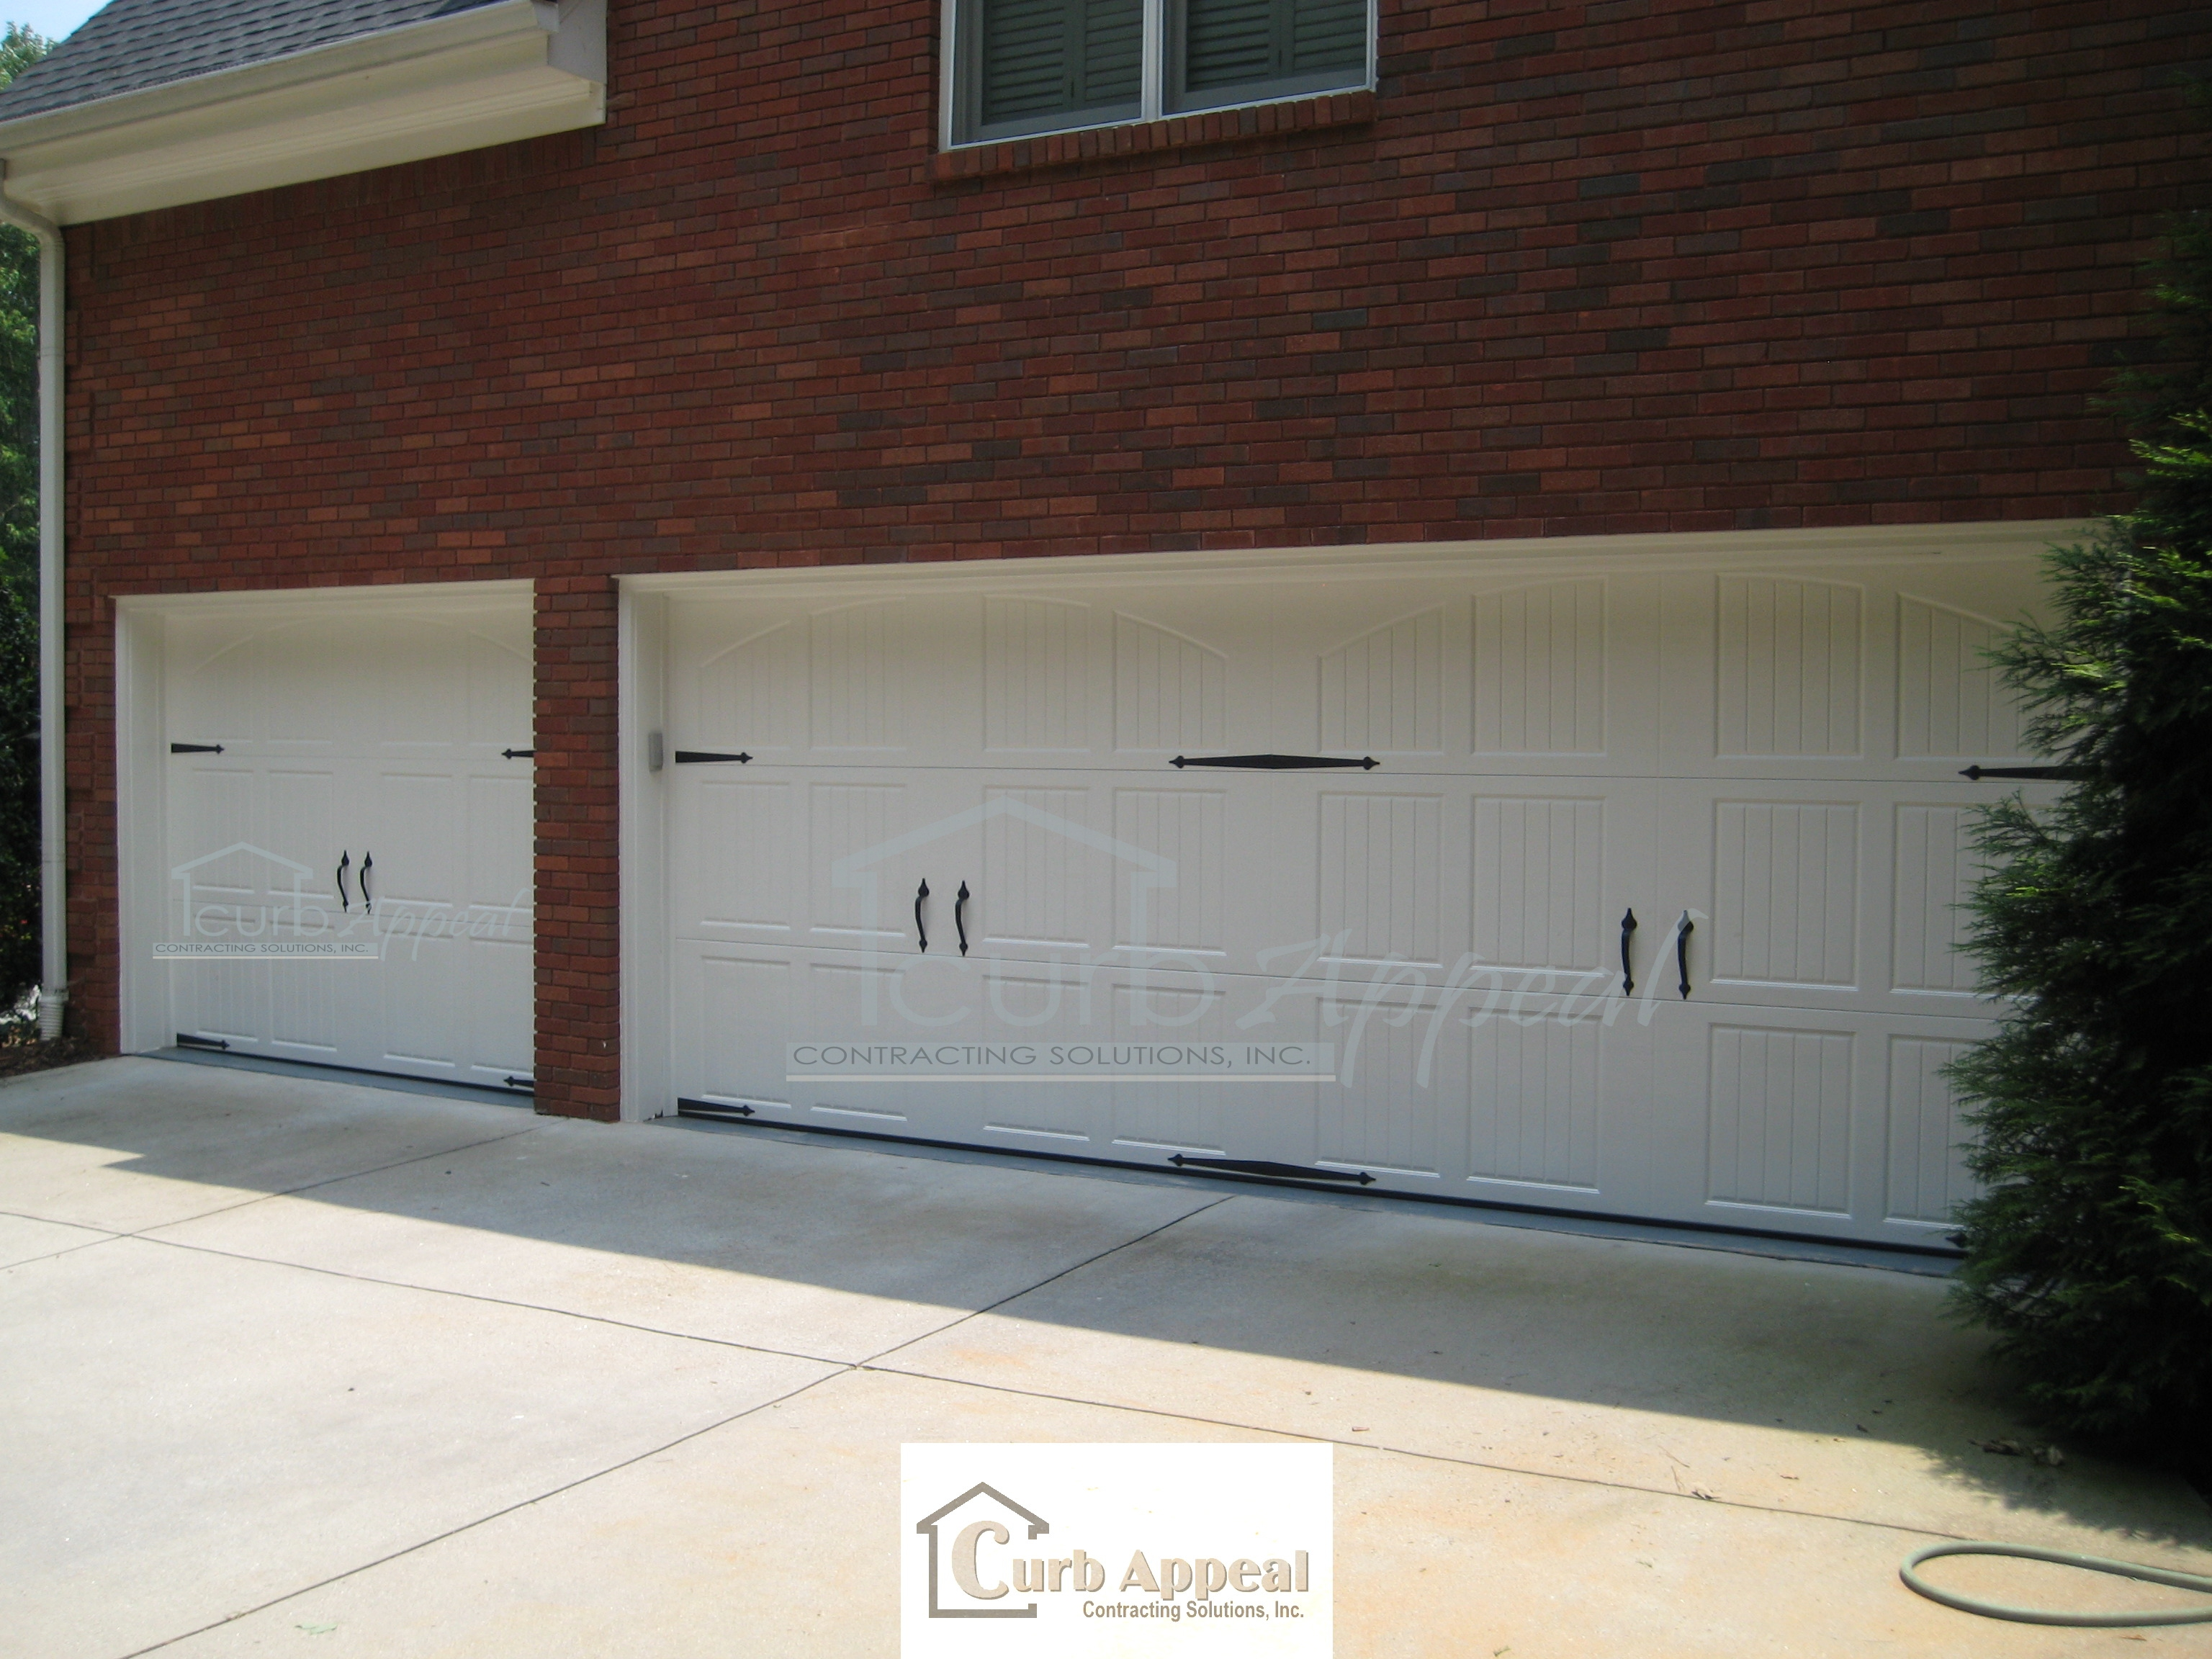 New Garage Door Curb Appeal Contracting Solutions Inc Sugar Hill